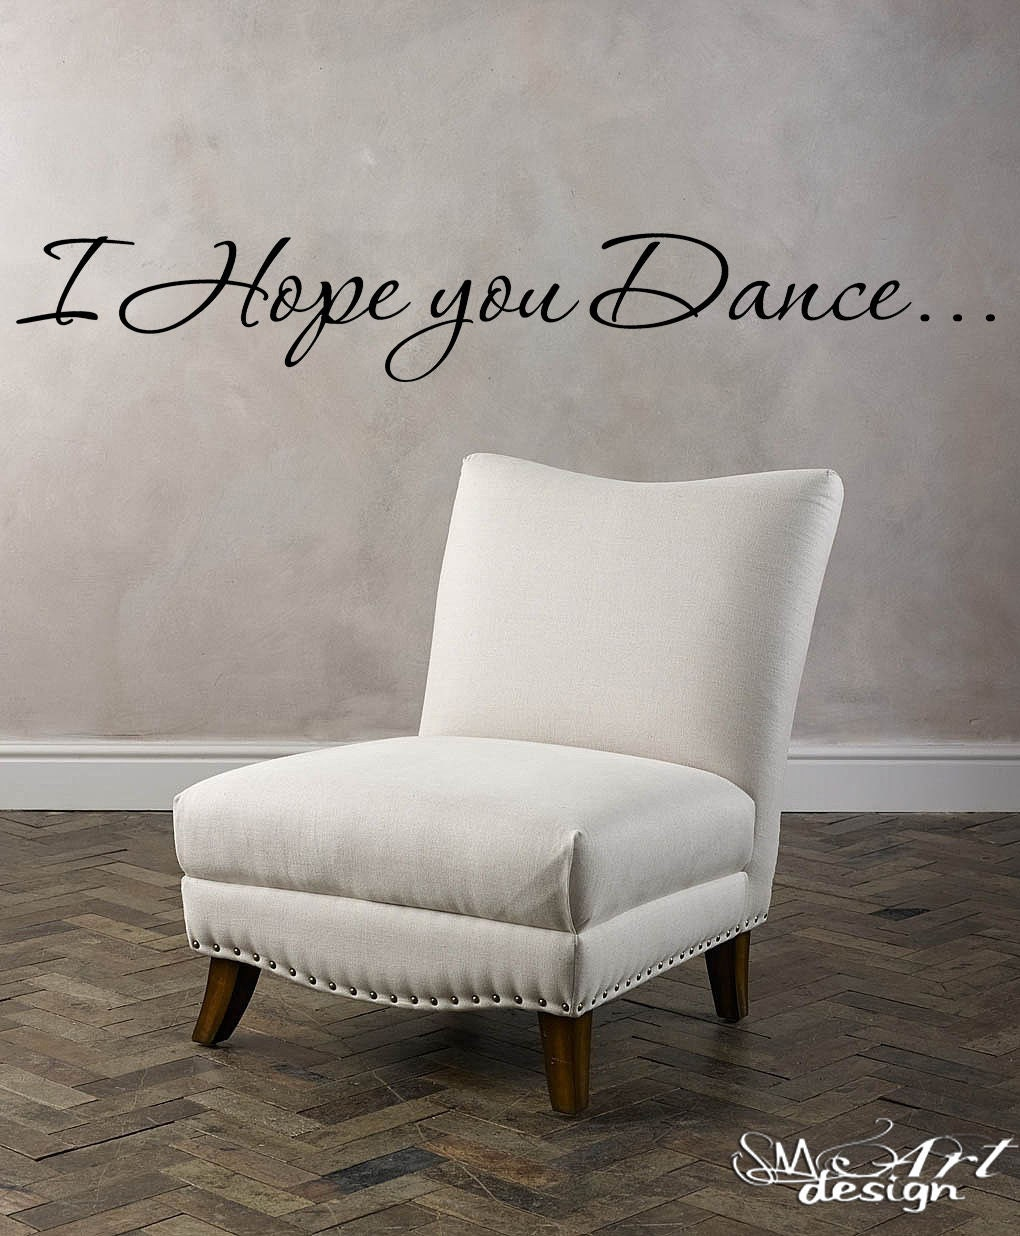 I Hope You Dance Wall Art DECAL Quotes And Phrase Vinyl Sticker - Vinyl wall decals quotes